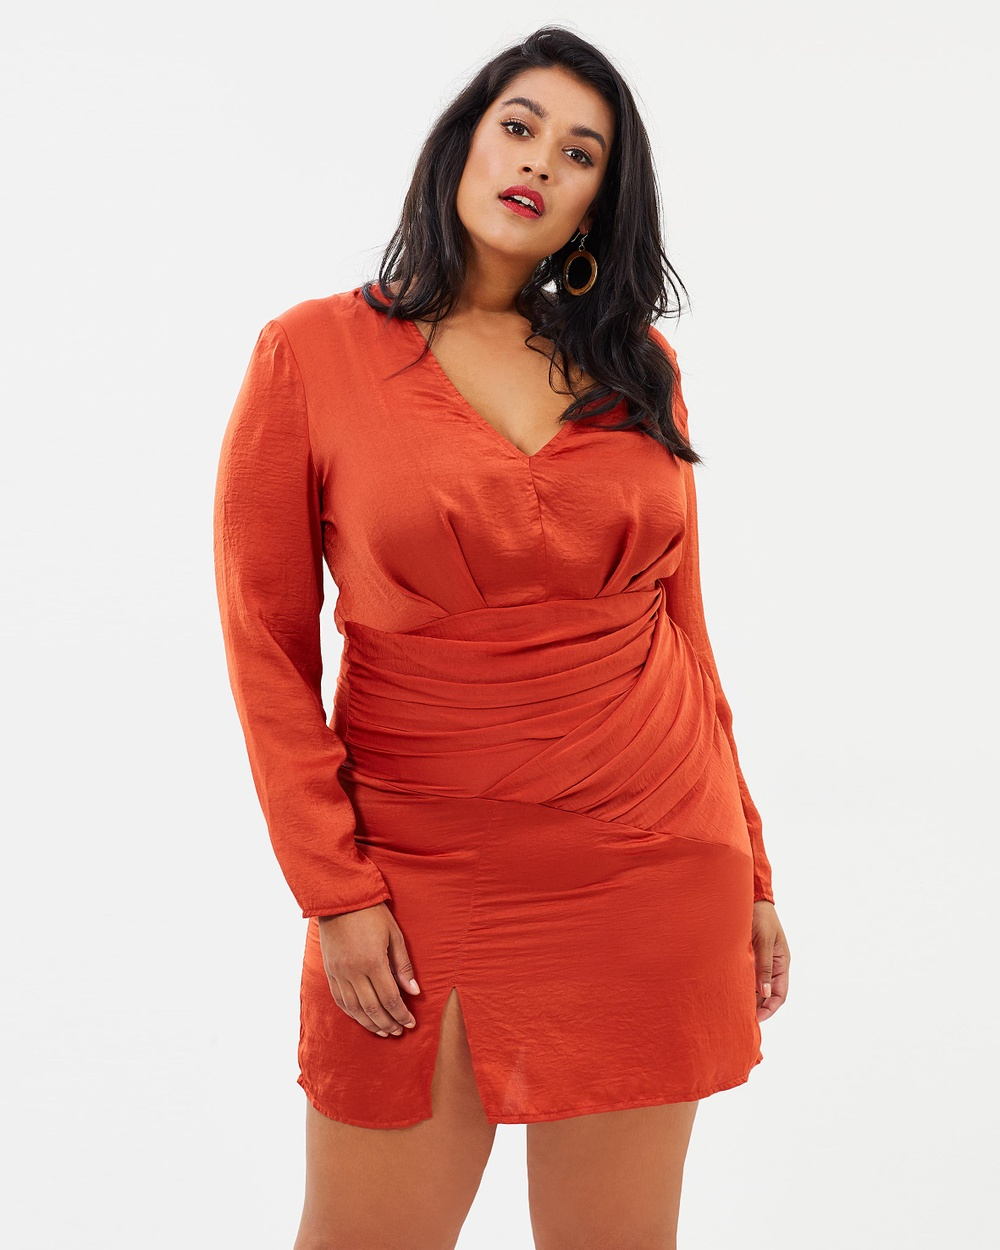 Missguided Curve Slinky Long Sleeve Panelled Dress Dresses Orange Slinky Long Sleeve Panelled Dress